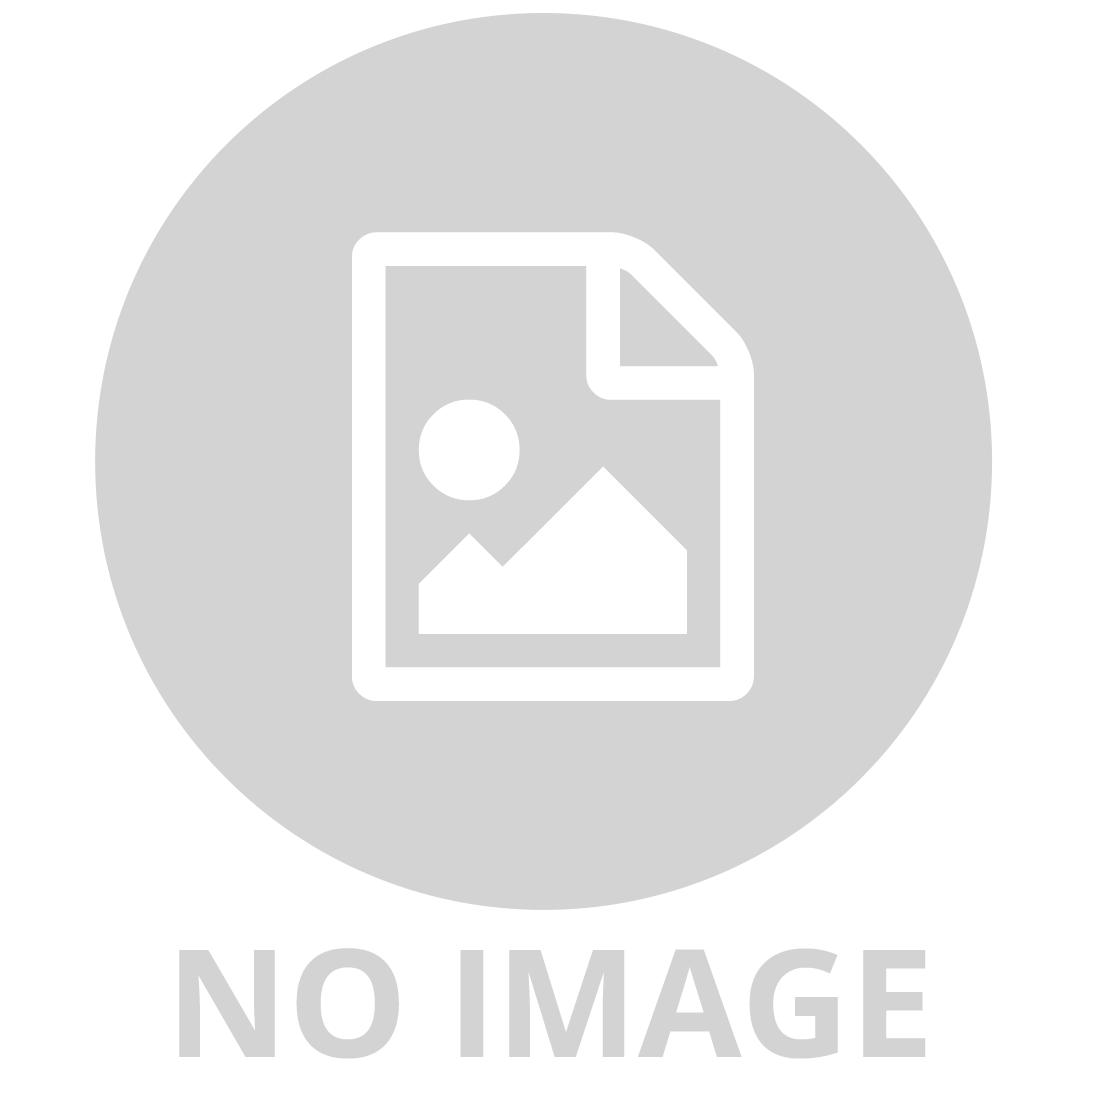 ONE COMPLETE SET OF LEGO SERIES 19 MINIFIGURES